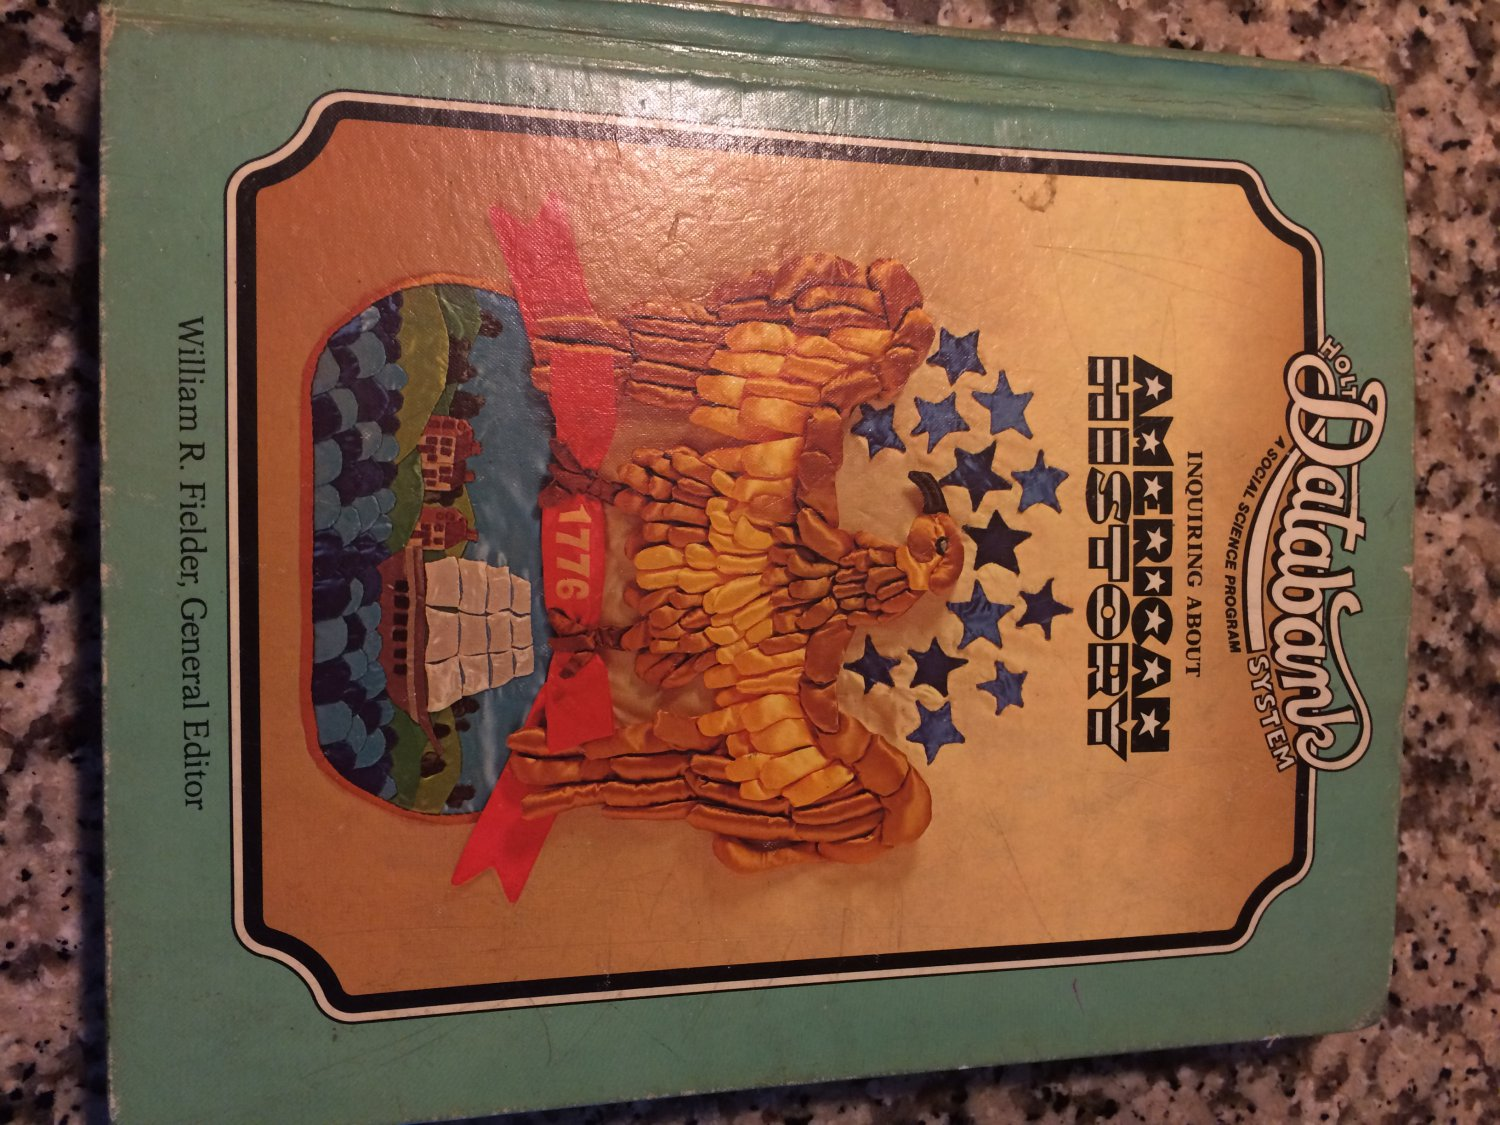 Inquiring About American History Volume 6 Hardcover